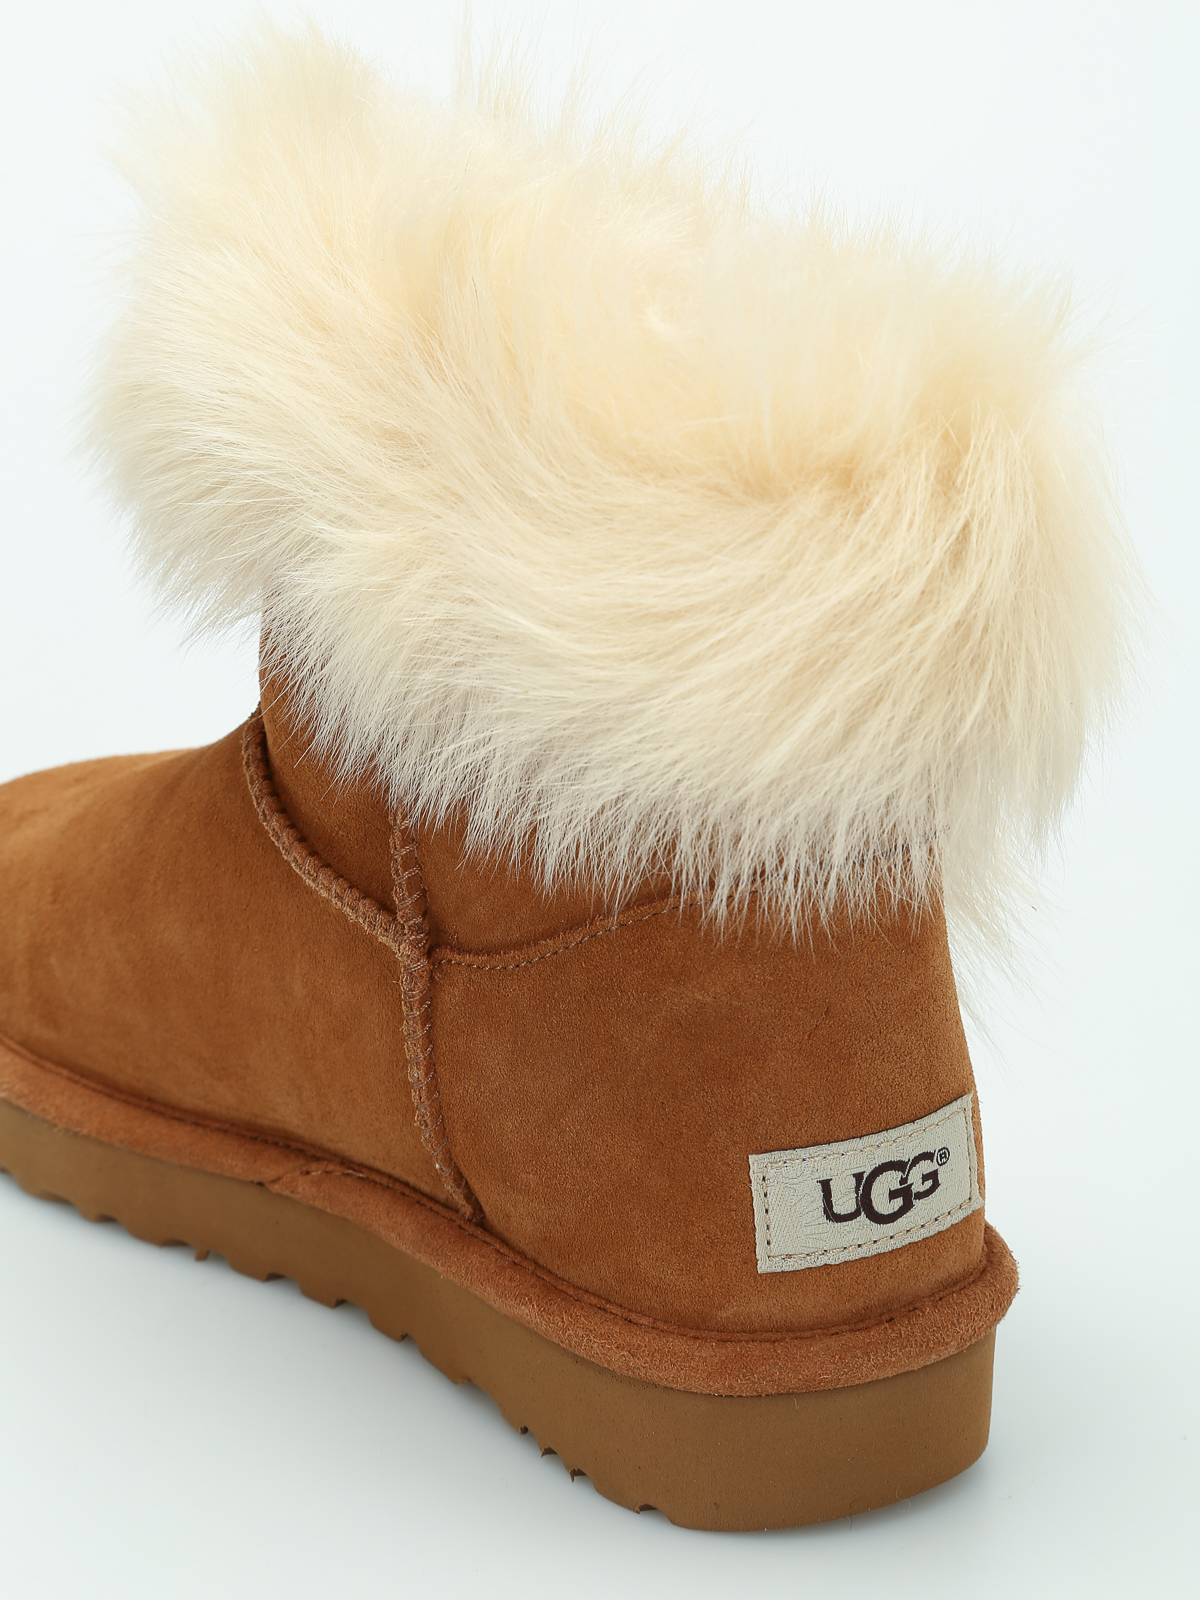 e715ac11368 Ugg - Milla ankle boots - ankle boots - 1018303 W CHE   iKRIX.com